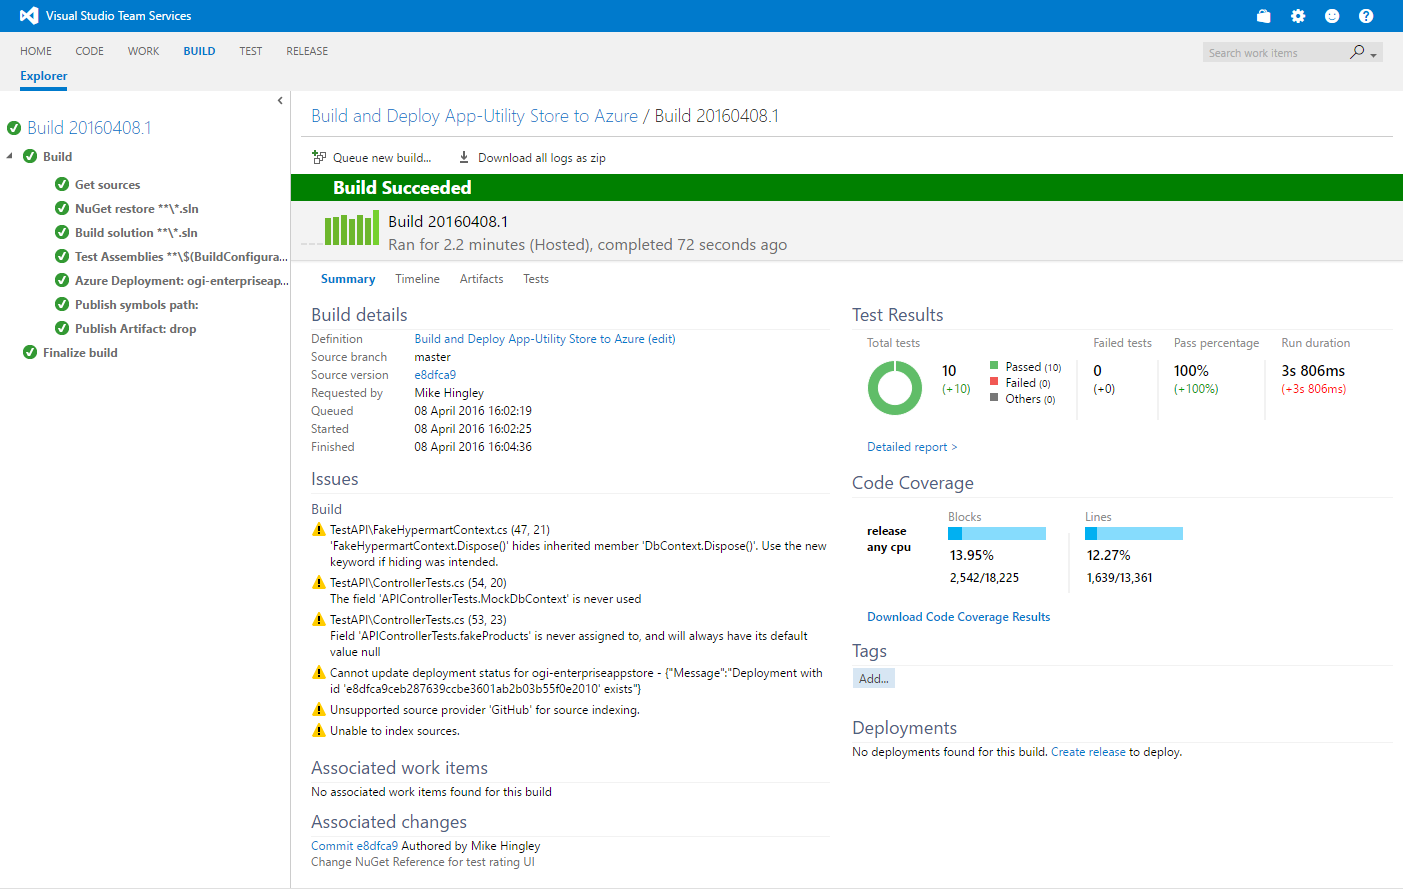 Build results from Visual Studio Team Services